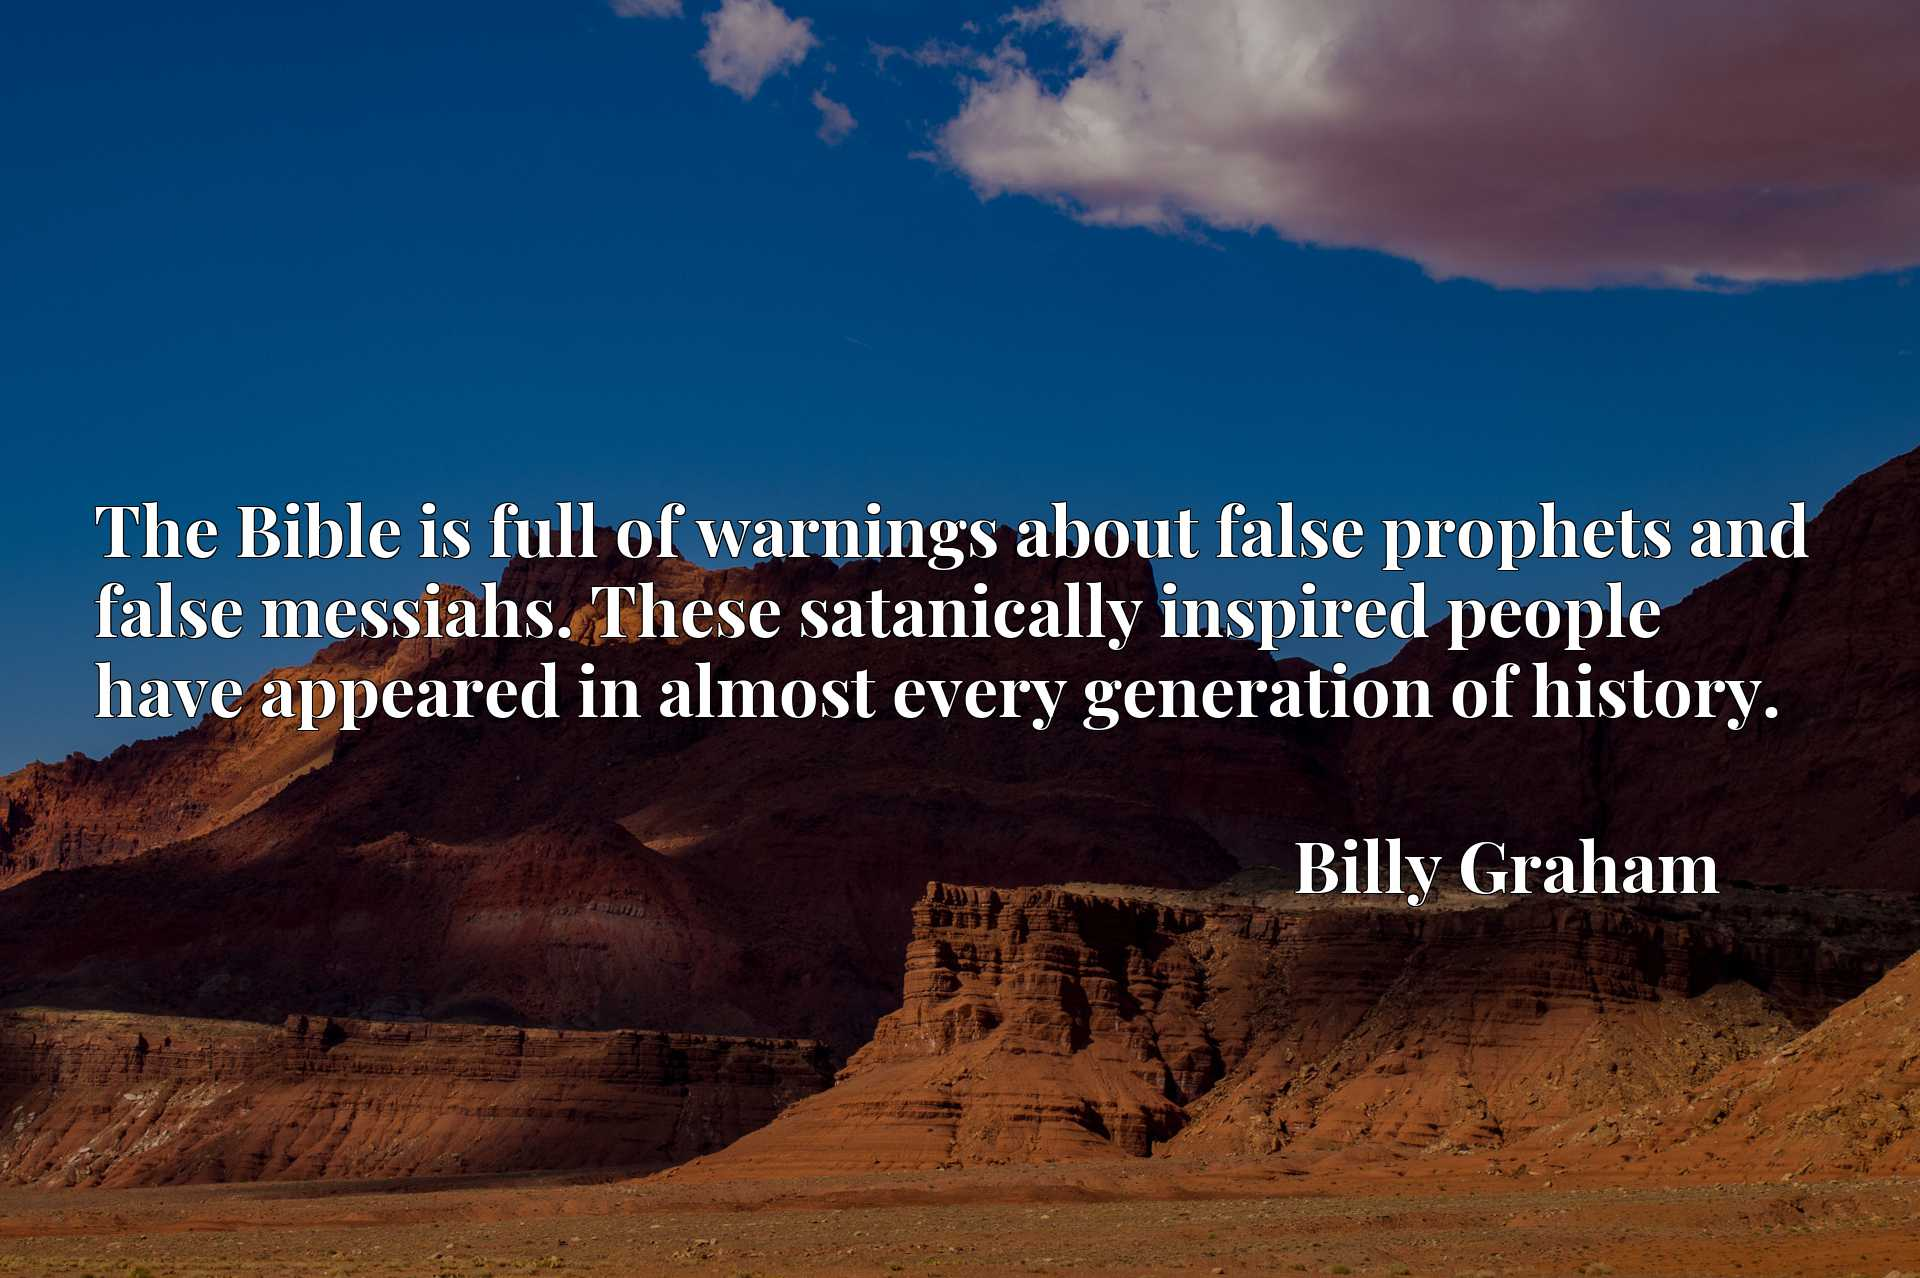 The Bible is full of warnings about false prophets and false messiahs. These satanically inspired people have appeared in almost every generation of history.